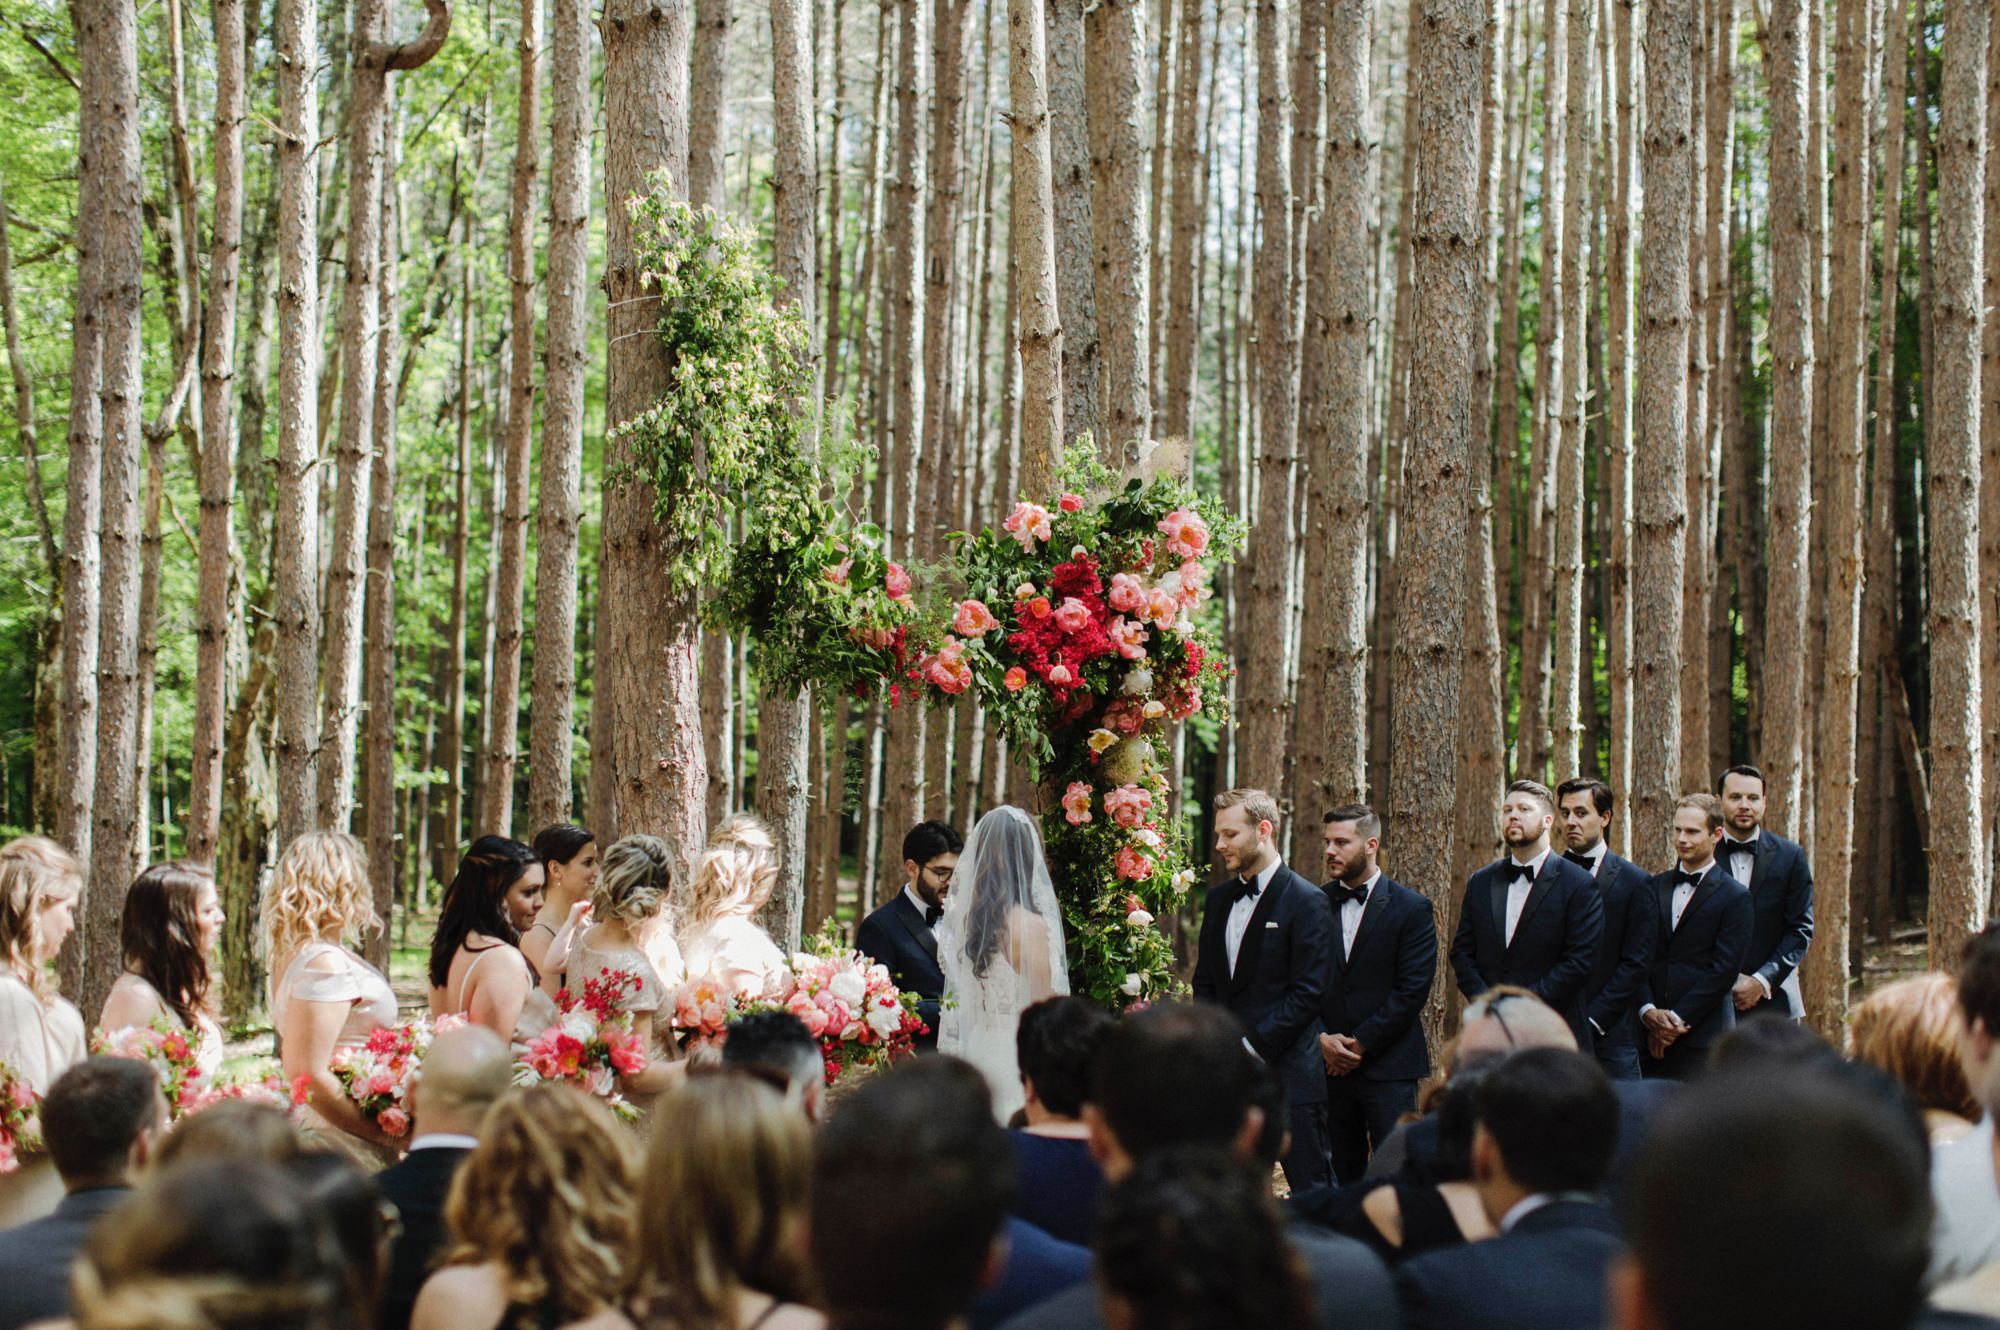 Wedding ceremony at the Pine Grove location at Roxbury Barn Estate in the Catskills New York